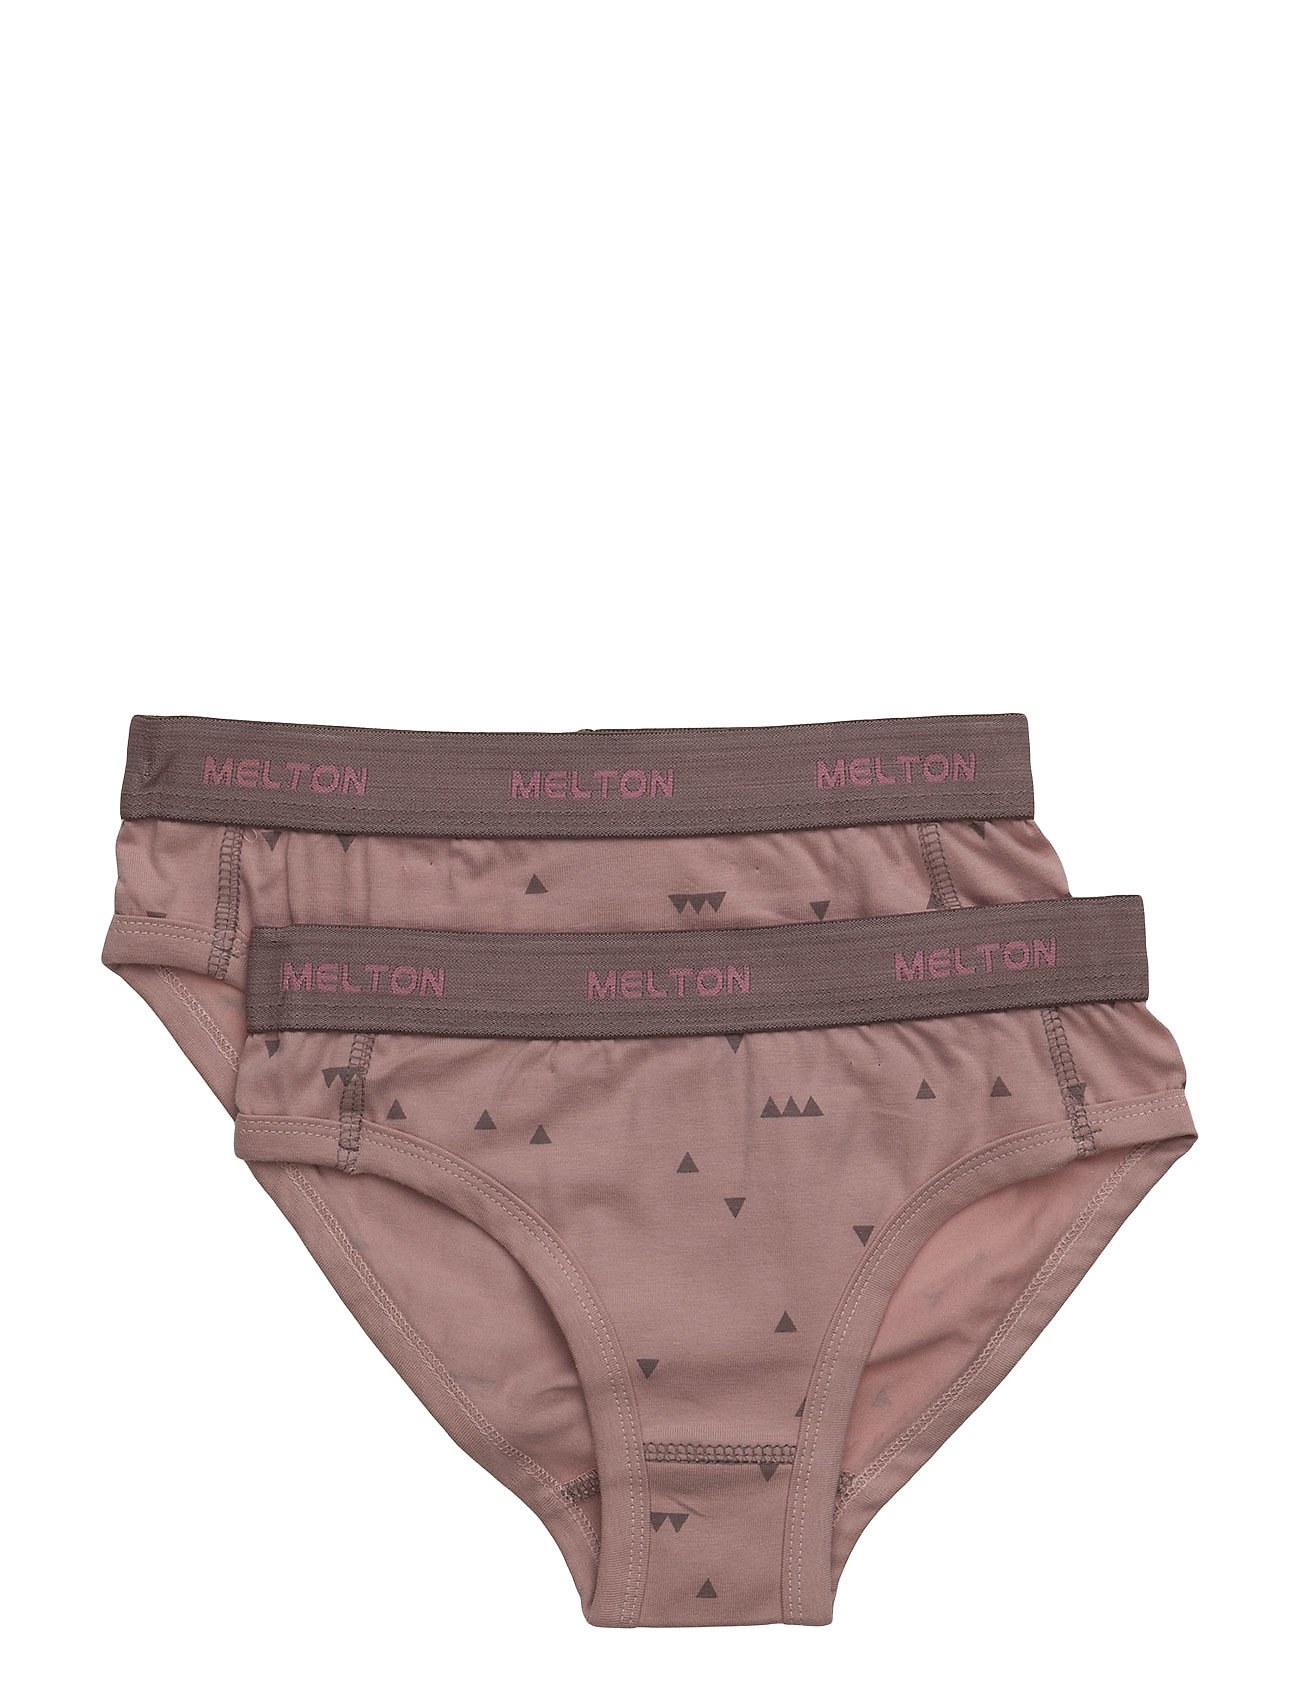 Melton Numbers, 2-pk AOP Girl Briefs - ALT ROSA